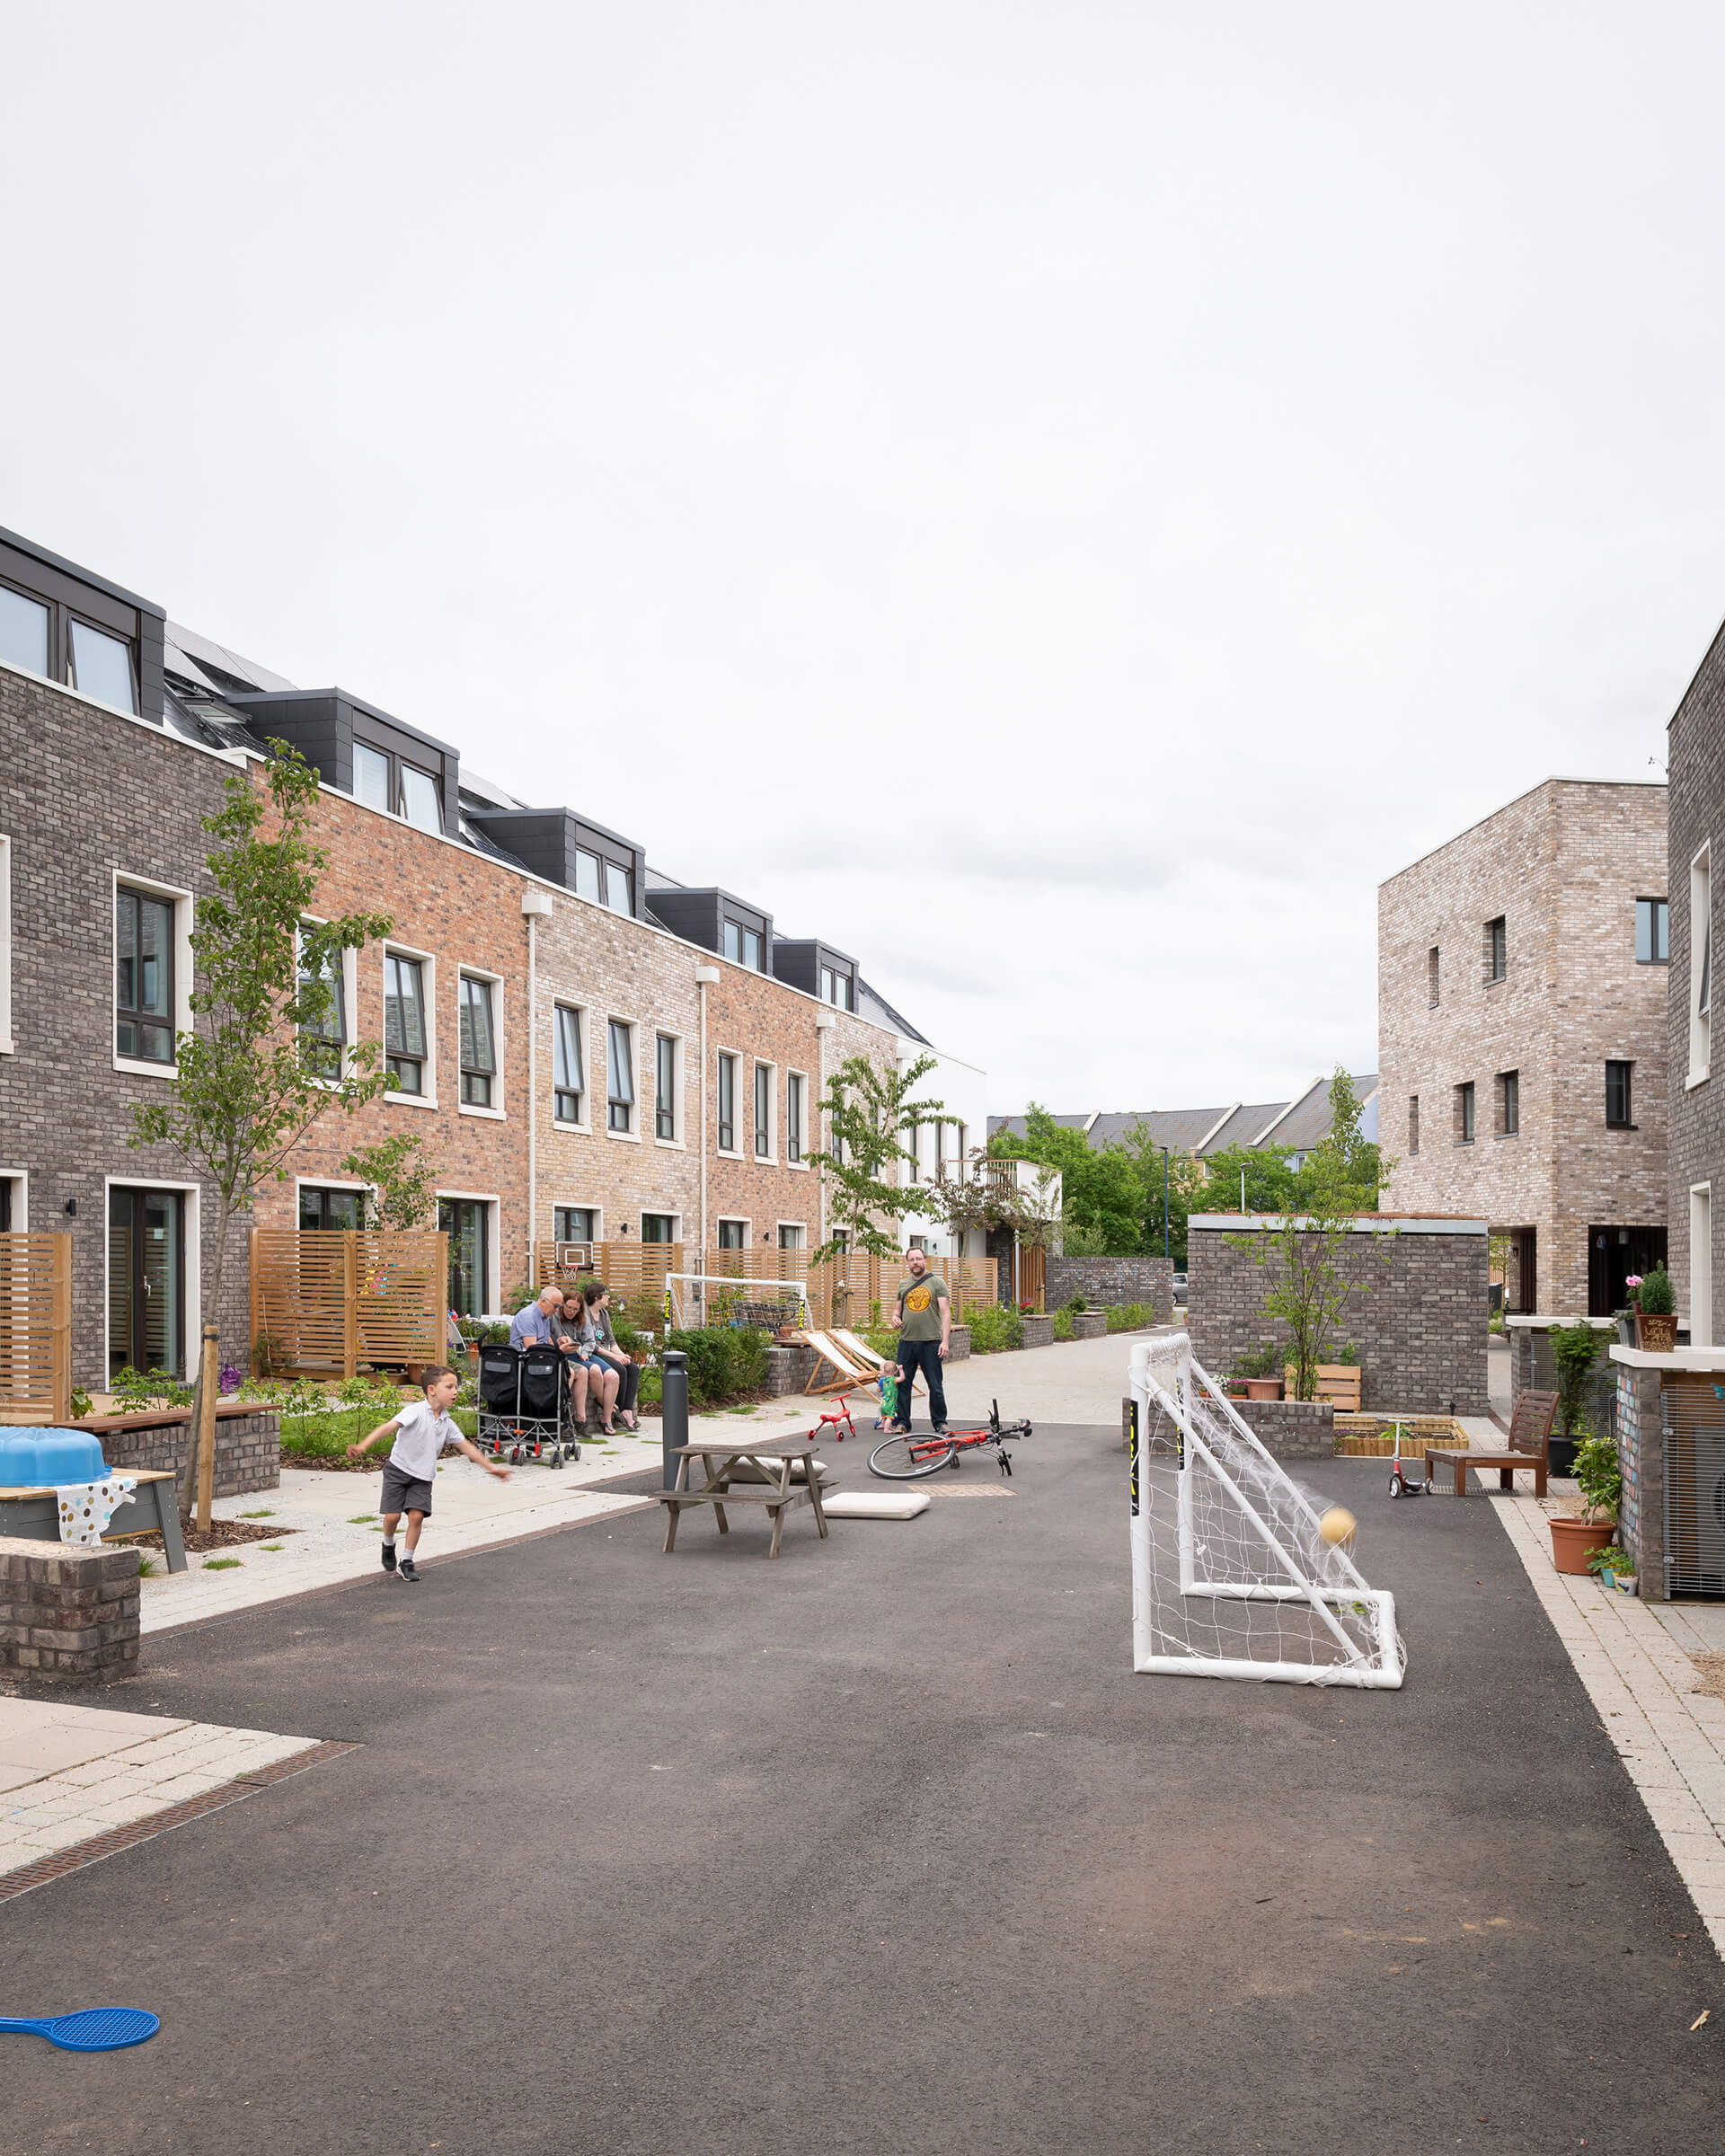 Alice Hamlin, Mole architects, Marmalade Lane | The Architectural Review | W Awards 2020 | STIRworld